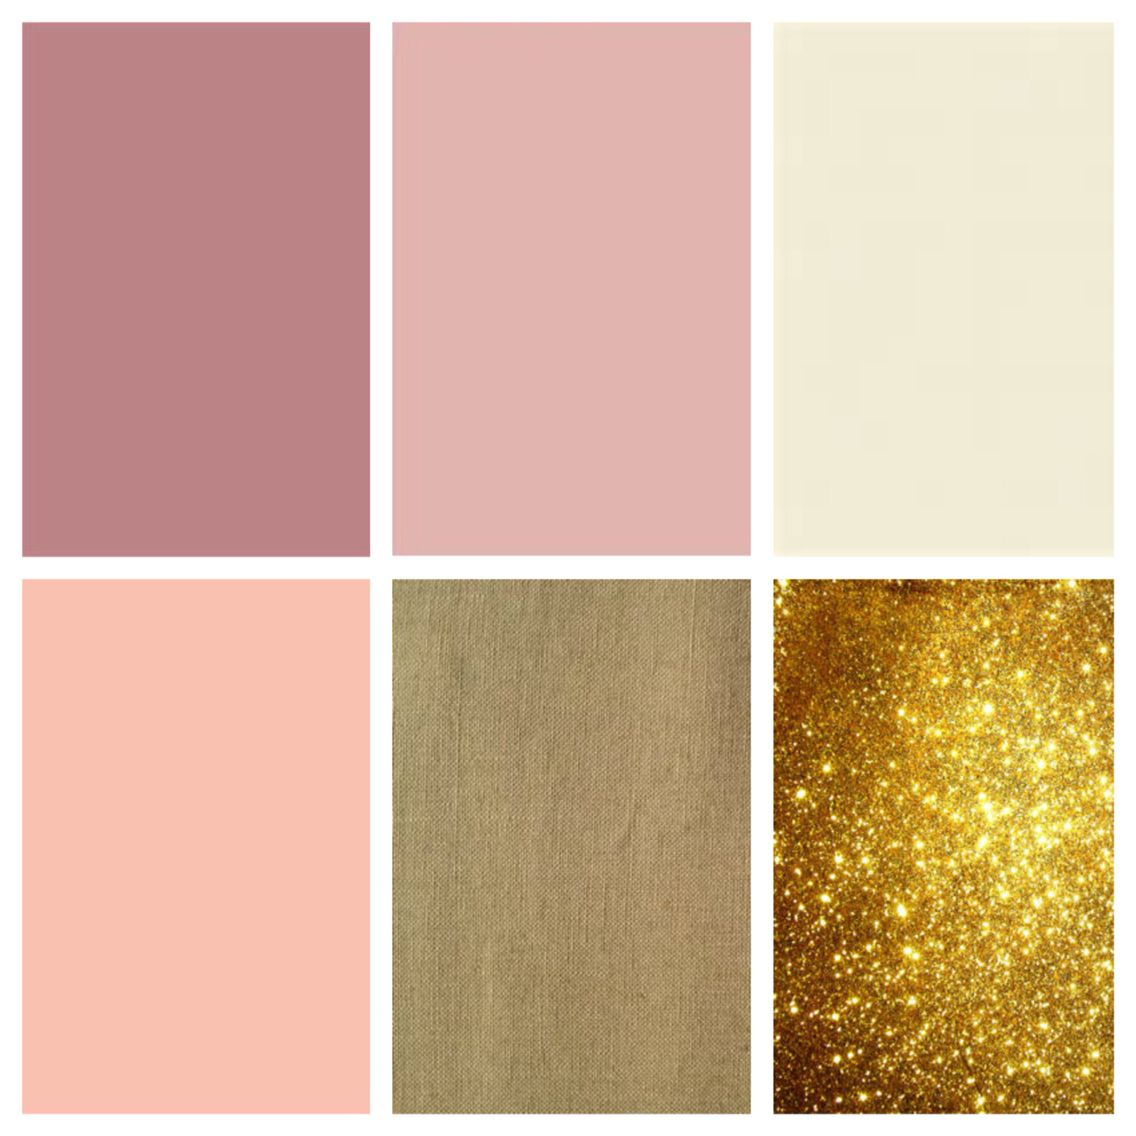 This schematic. Cream, blush-dusty rose, burlap, and gold ...